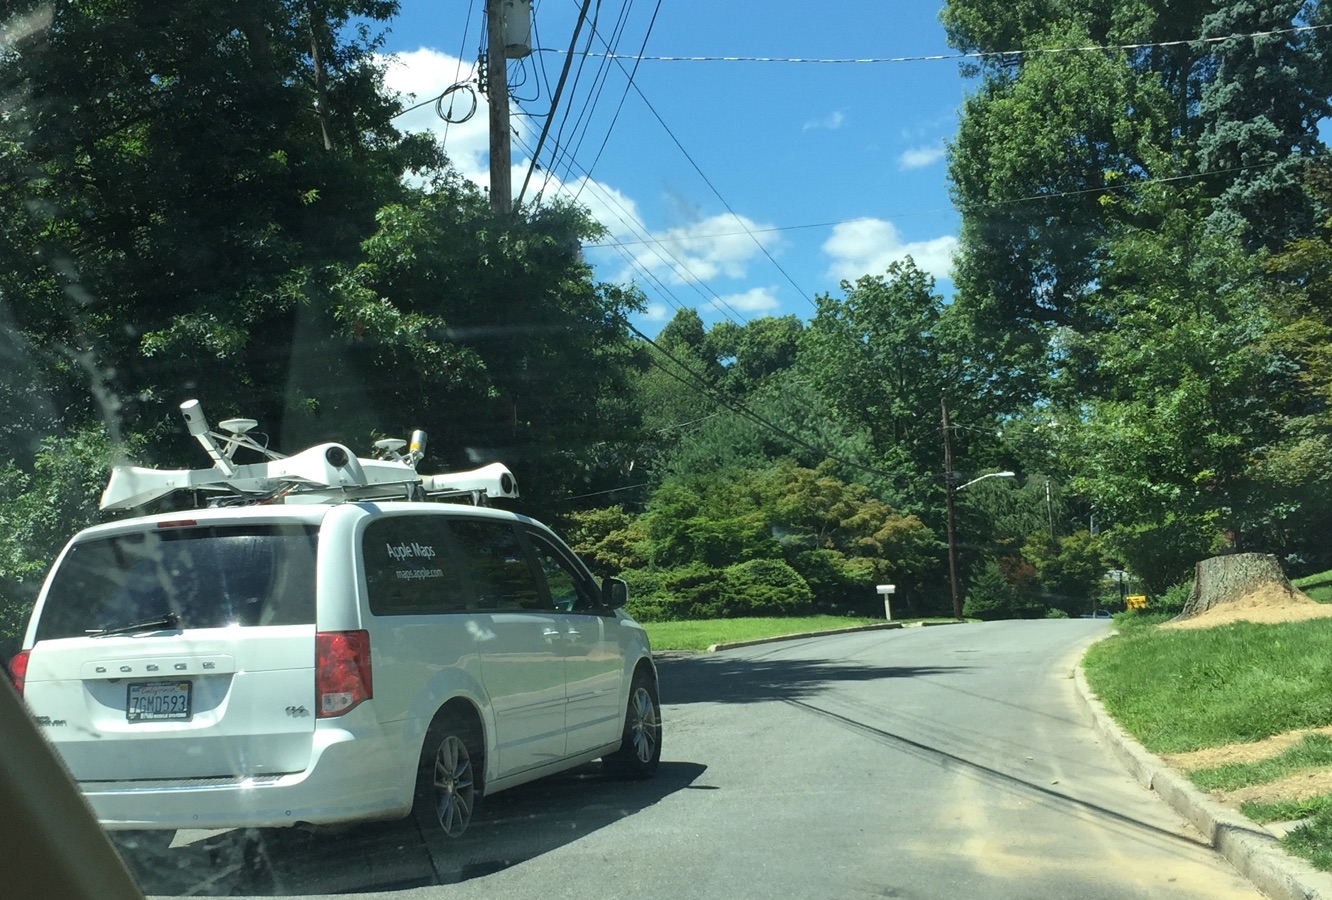 Apple Maps van spotted in greater NYC metro area 1